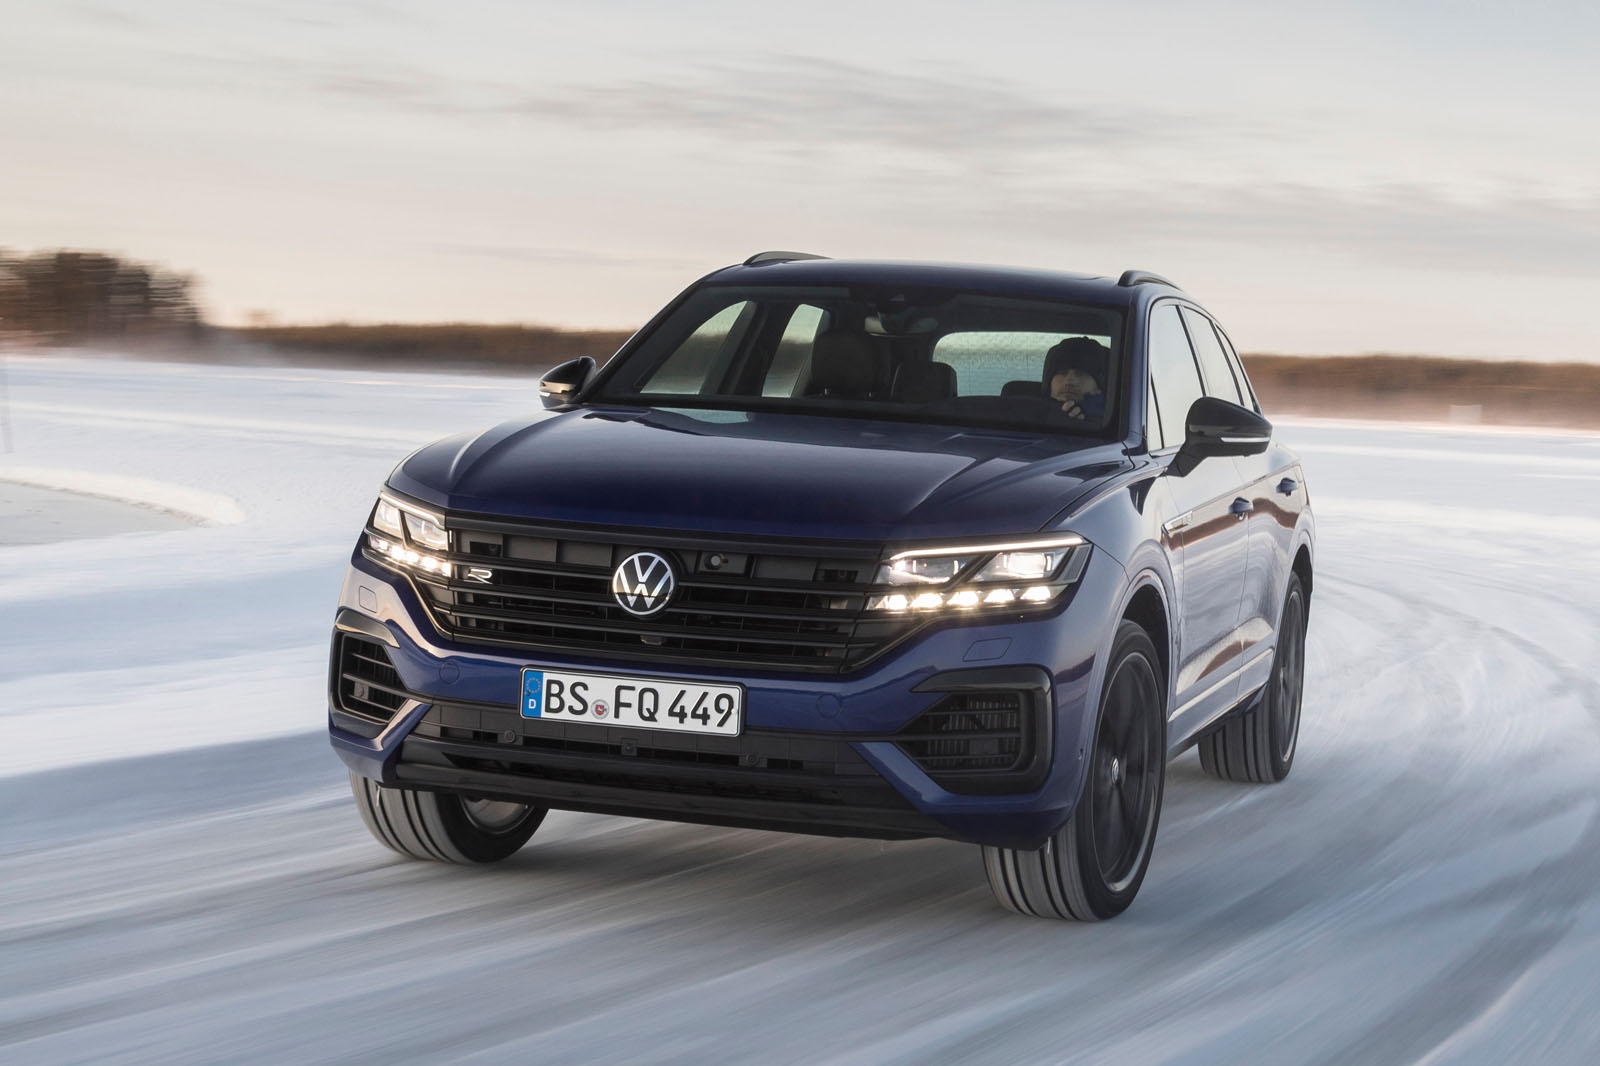 The hybrid-powerred Touareg R arrives to dethrone the 421-hp V8 TDI spec. What does it have on offer?